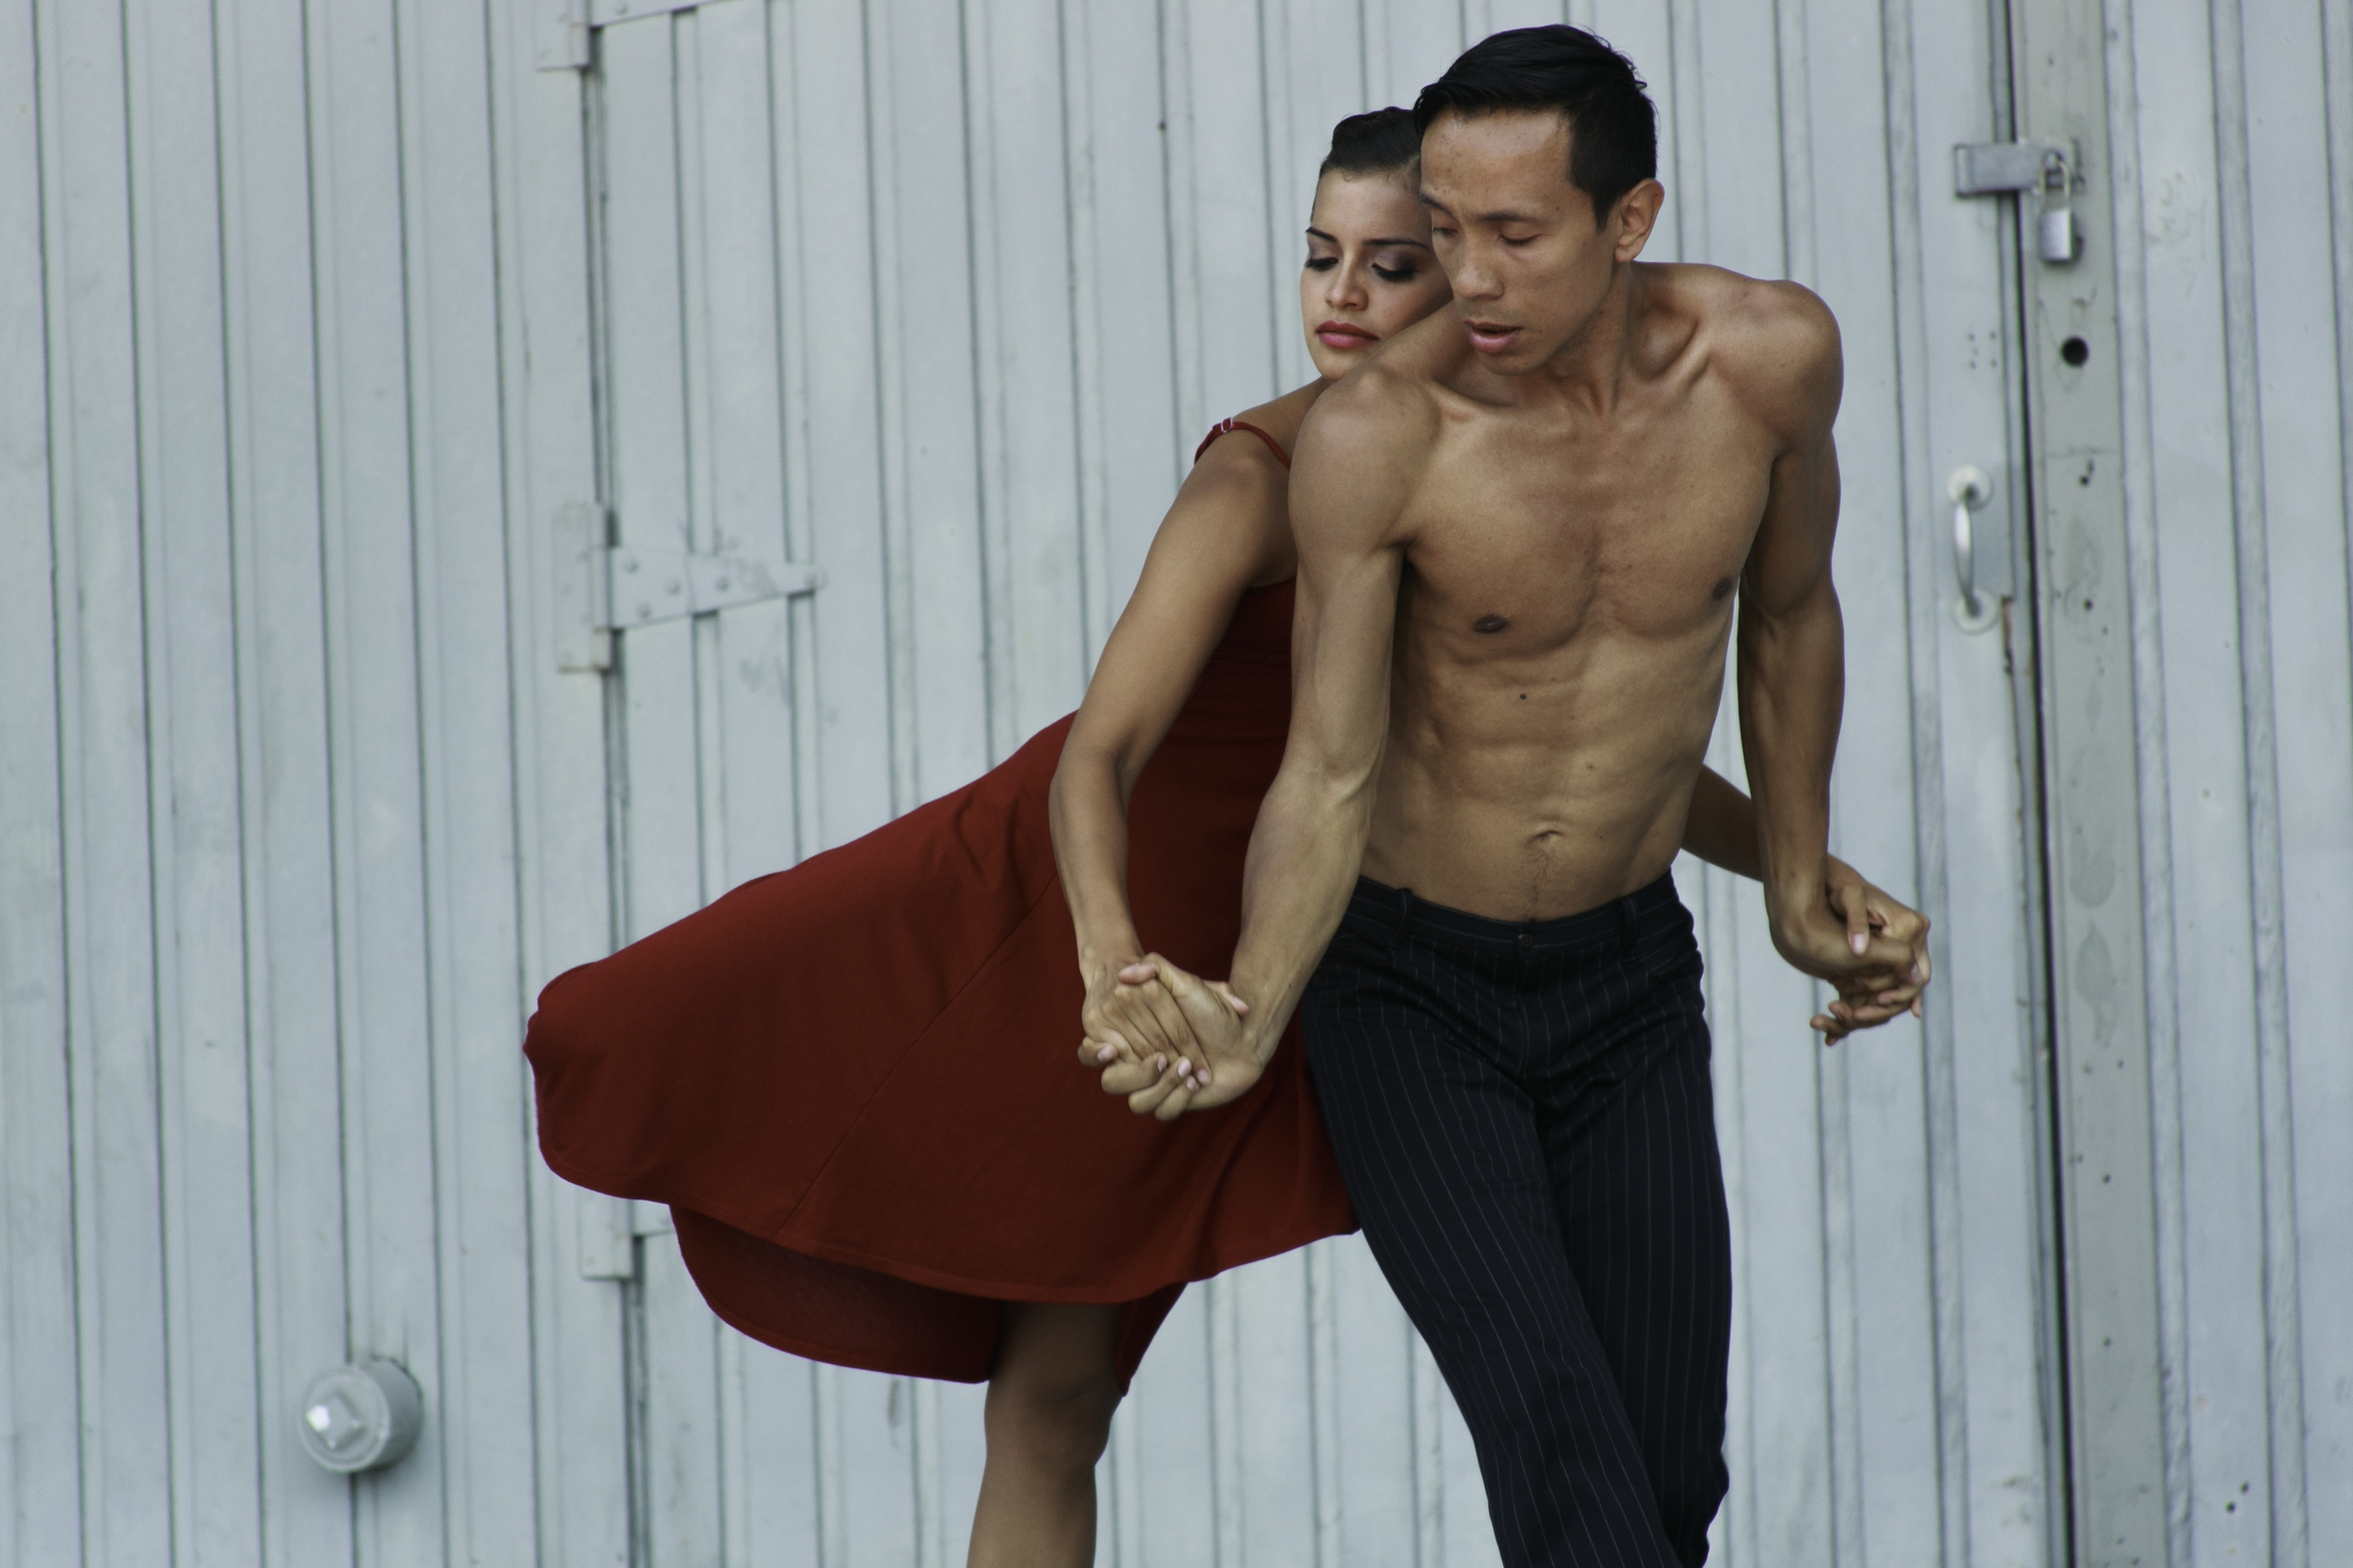 Kassandra Cruz and Yesid Lopez • photo by Francisco Graciano